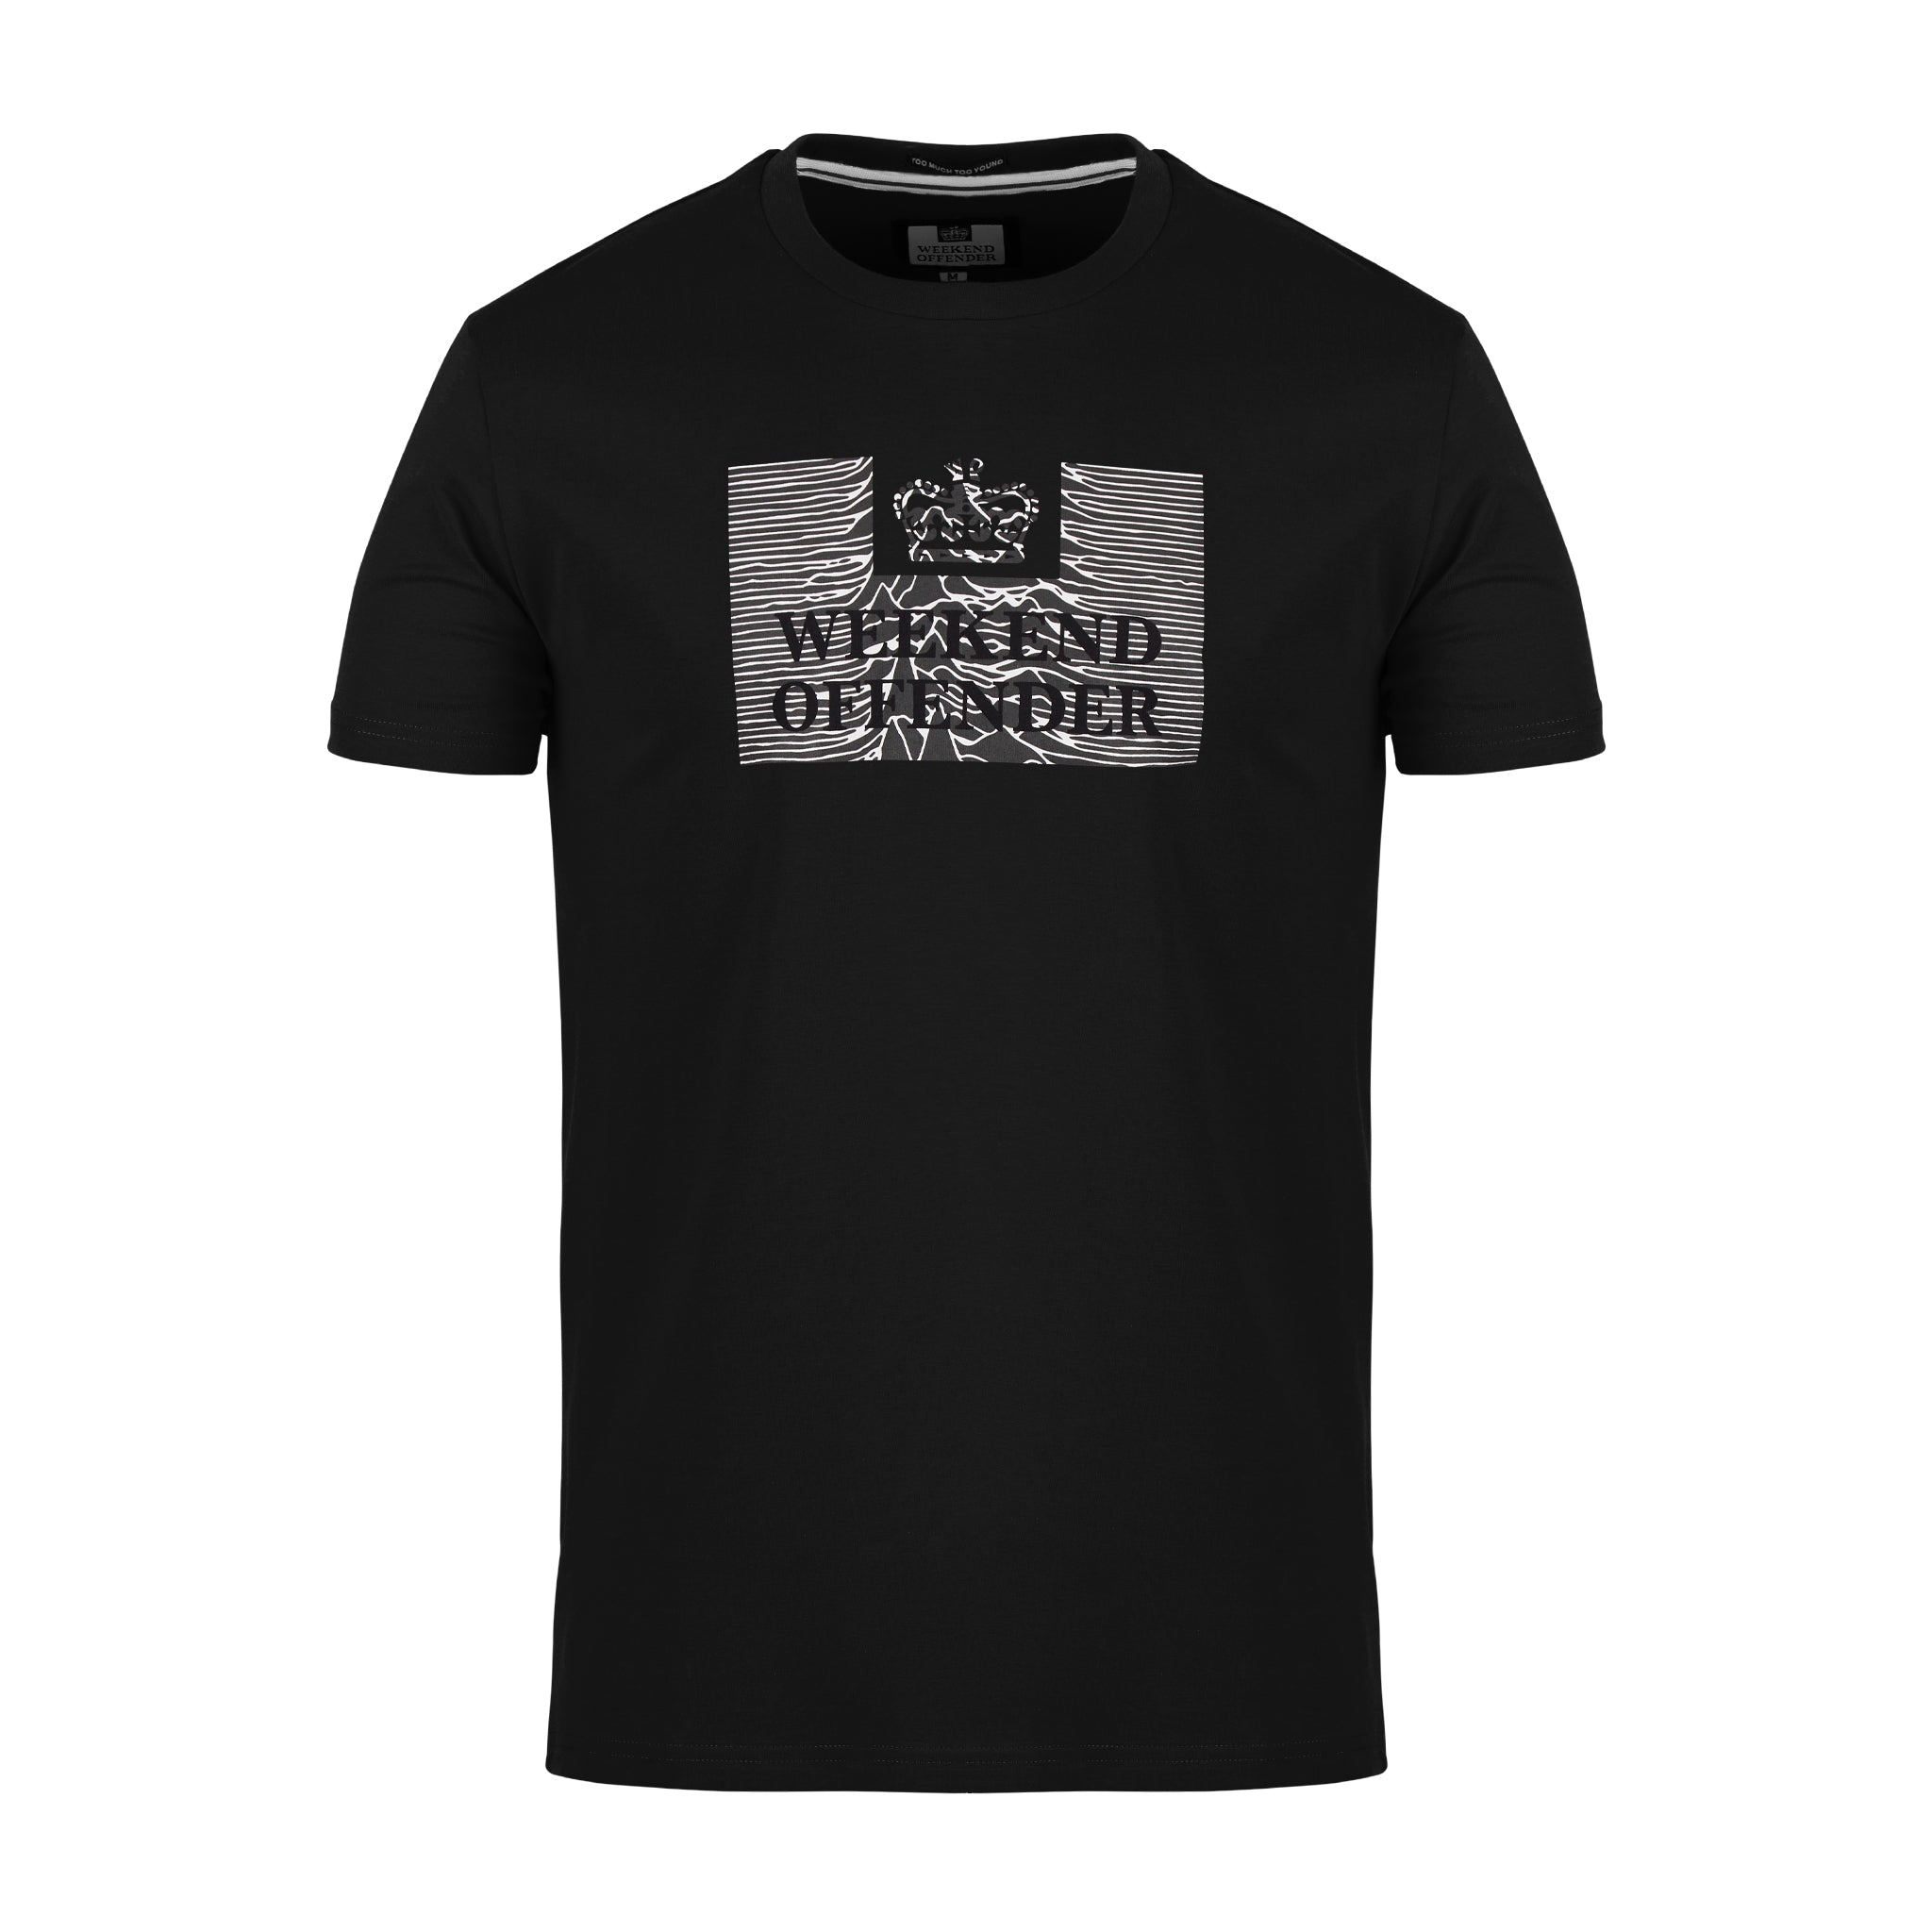 Unknown Pleasures Black